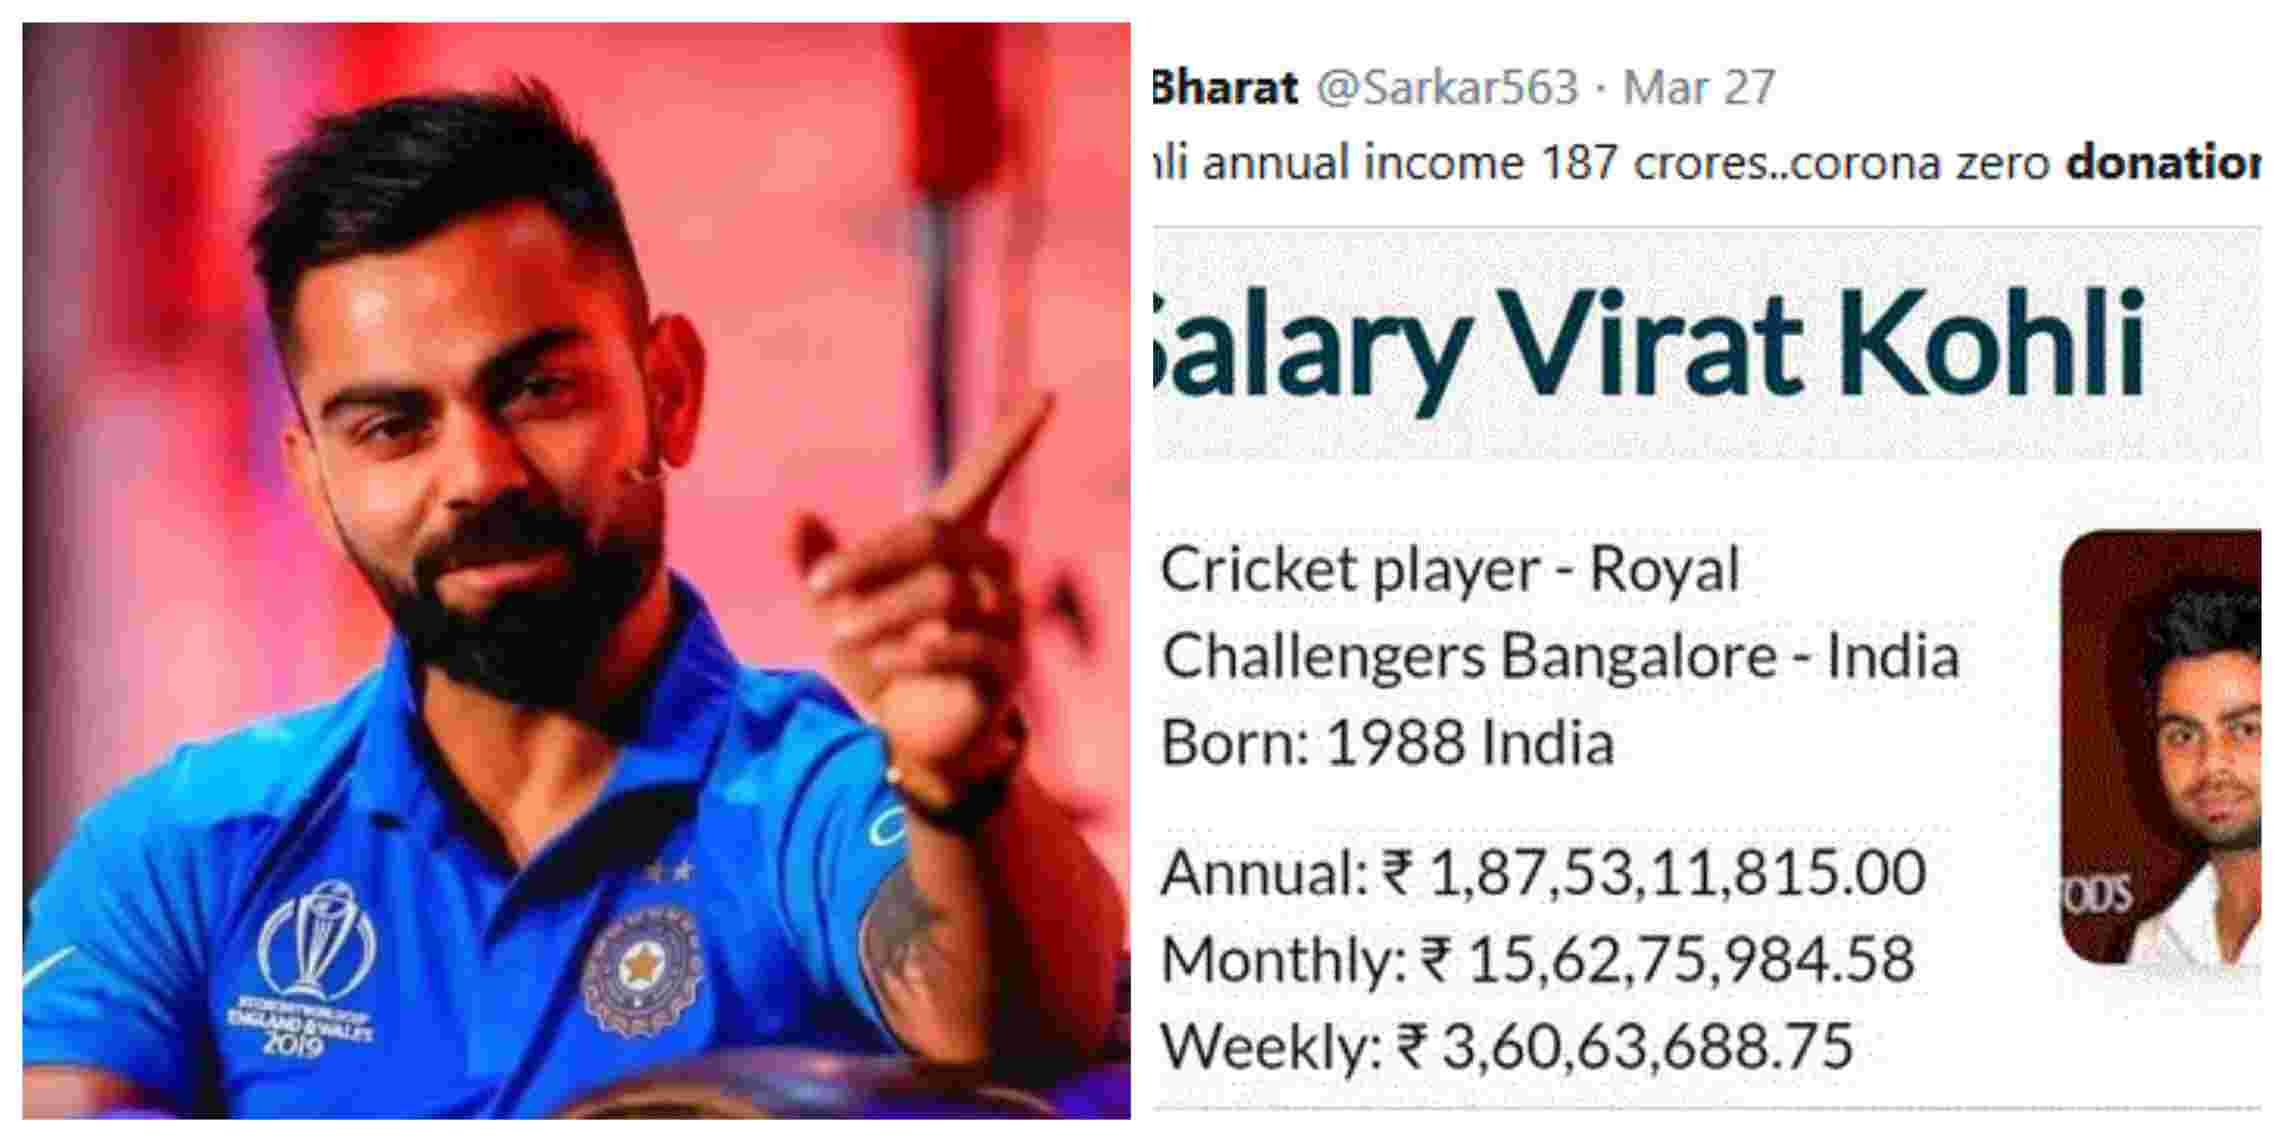 Fans question the role of Virat Kohli in country's fight against coronavirus